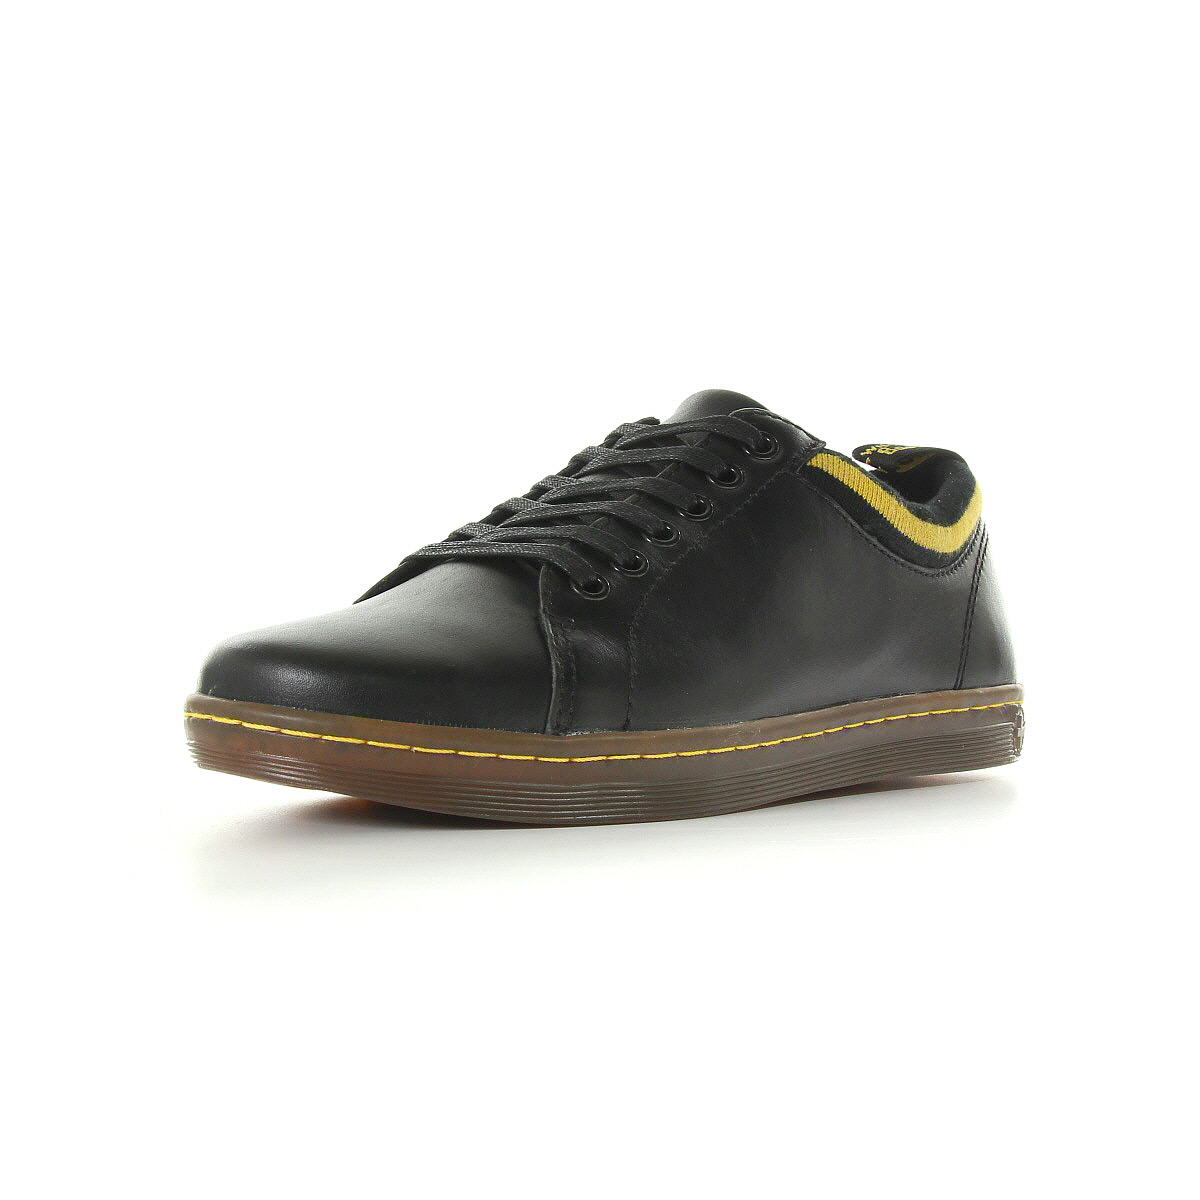 chaussures baskets doc martens homme trenton taille noir noire cuir lacets ebay. Black Bedroom Furniture Sets. Home Design Ideas